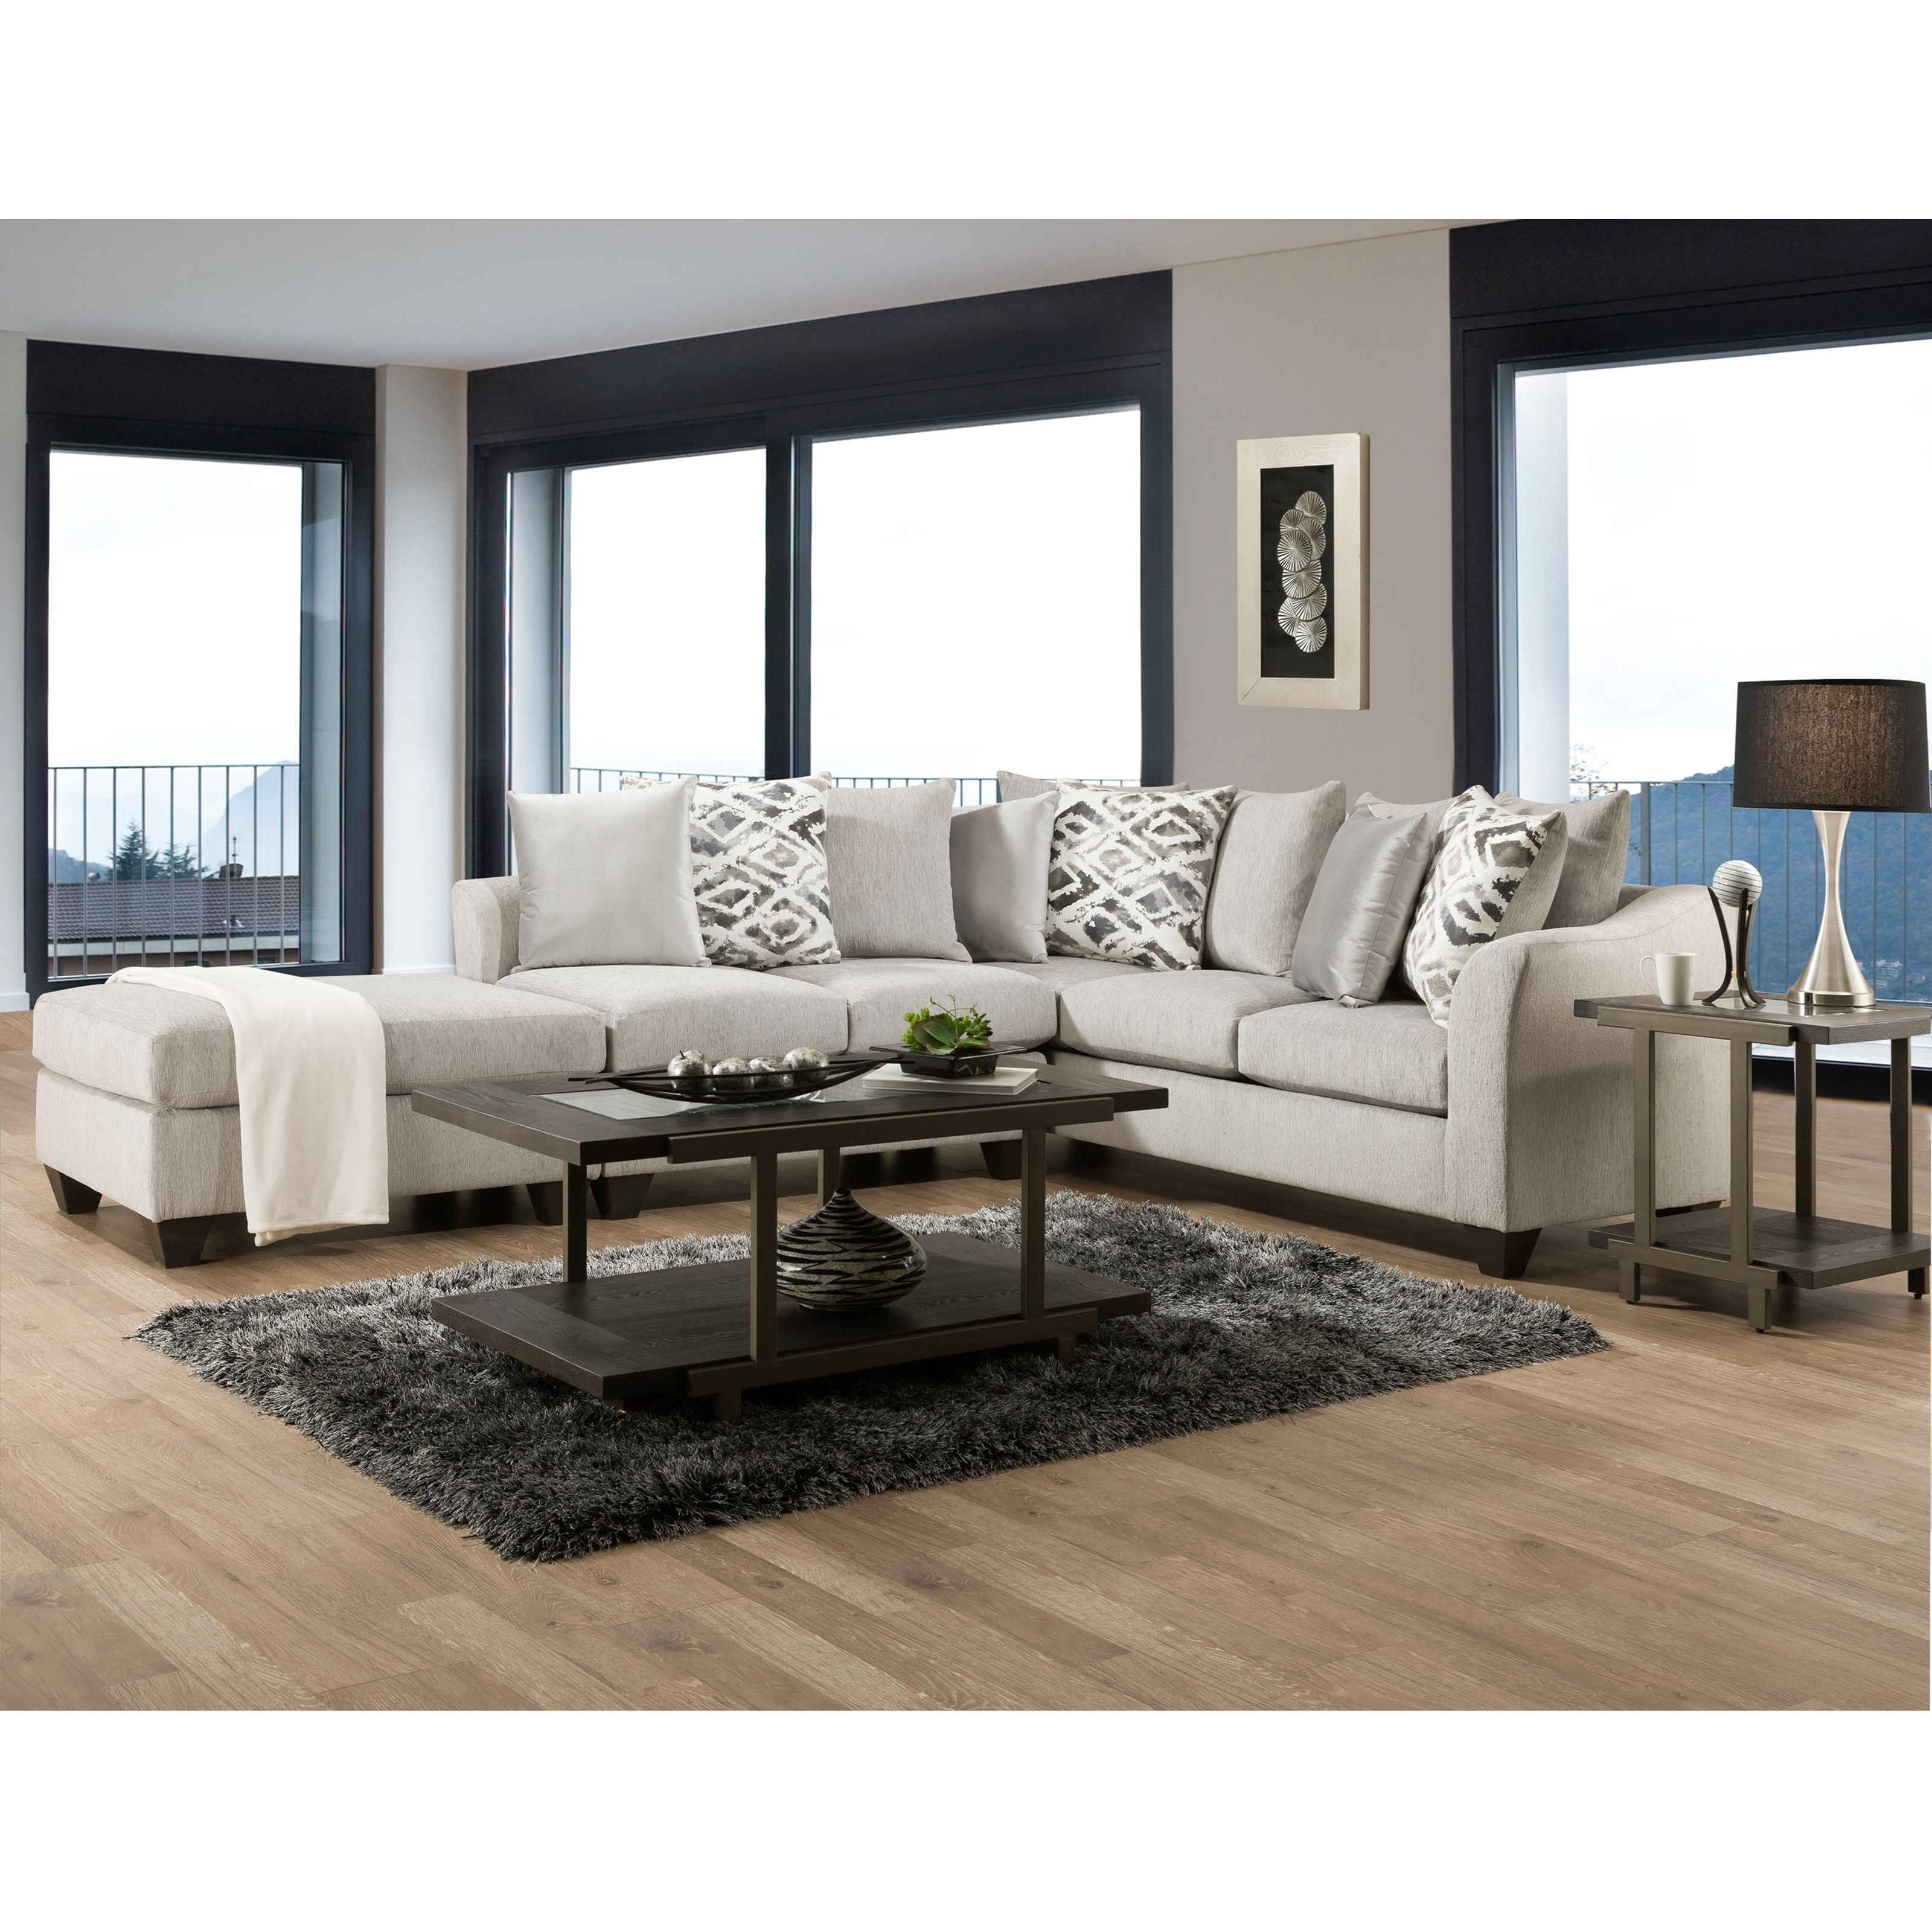 1380 Sectional by Peak Living at Prime Brothers Furniture